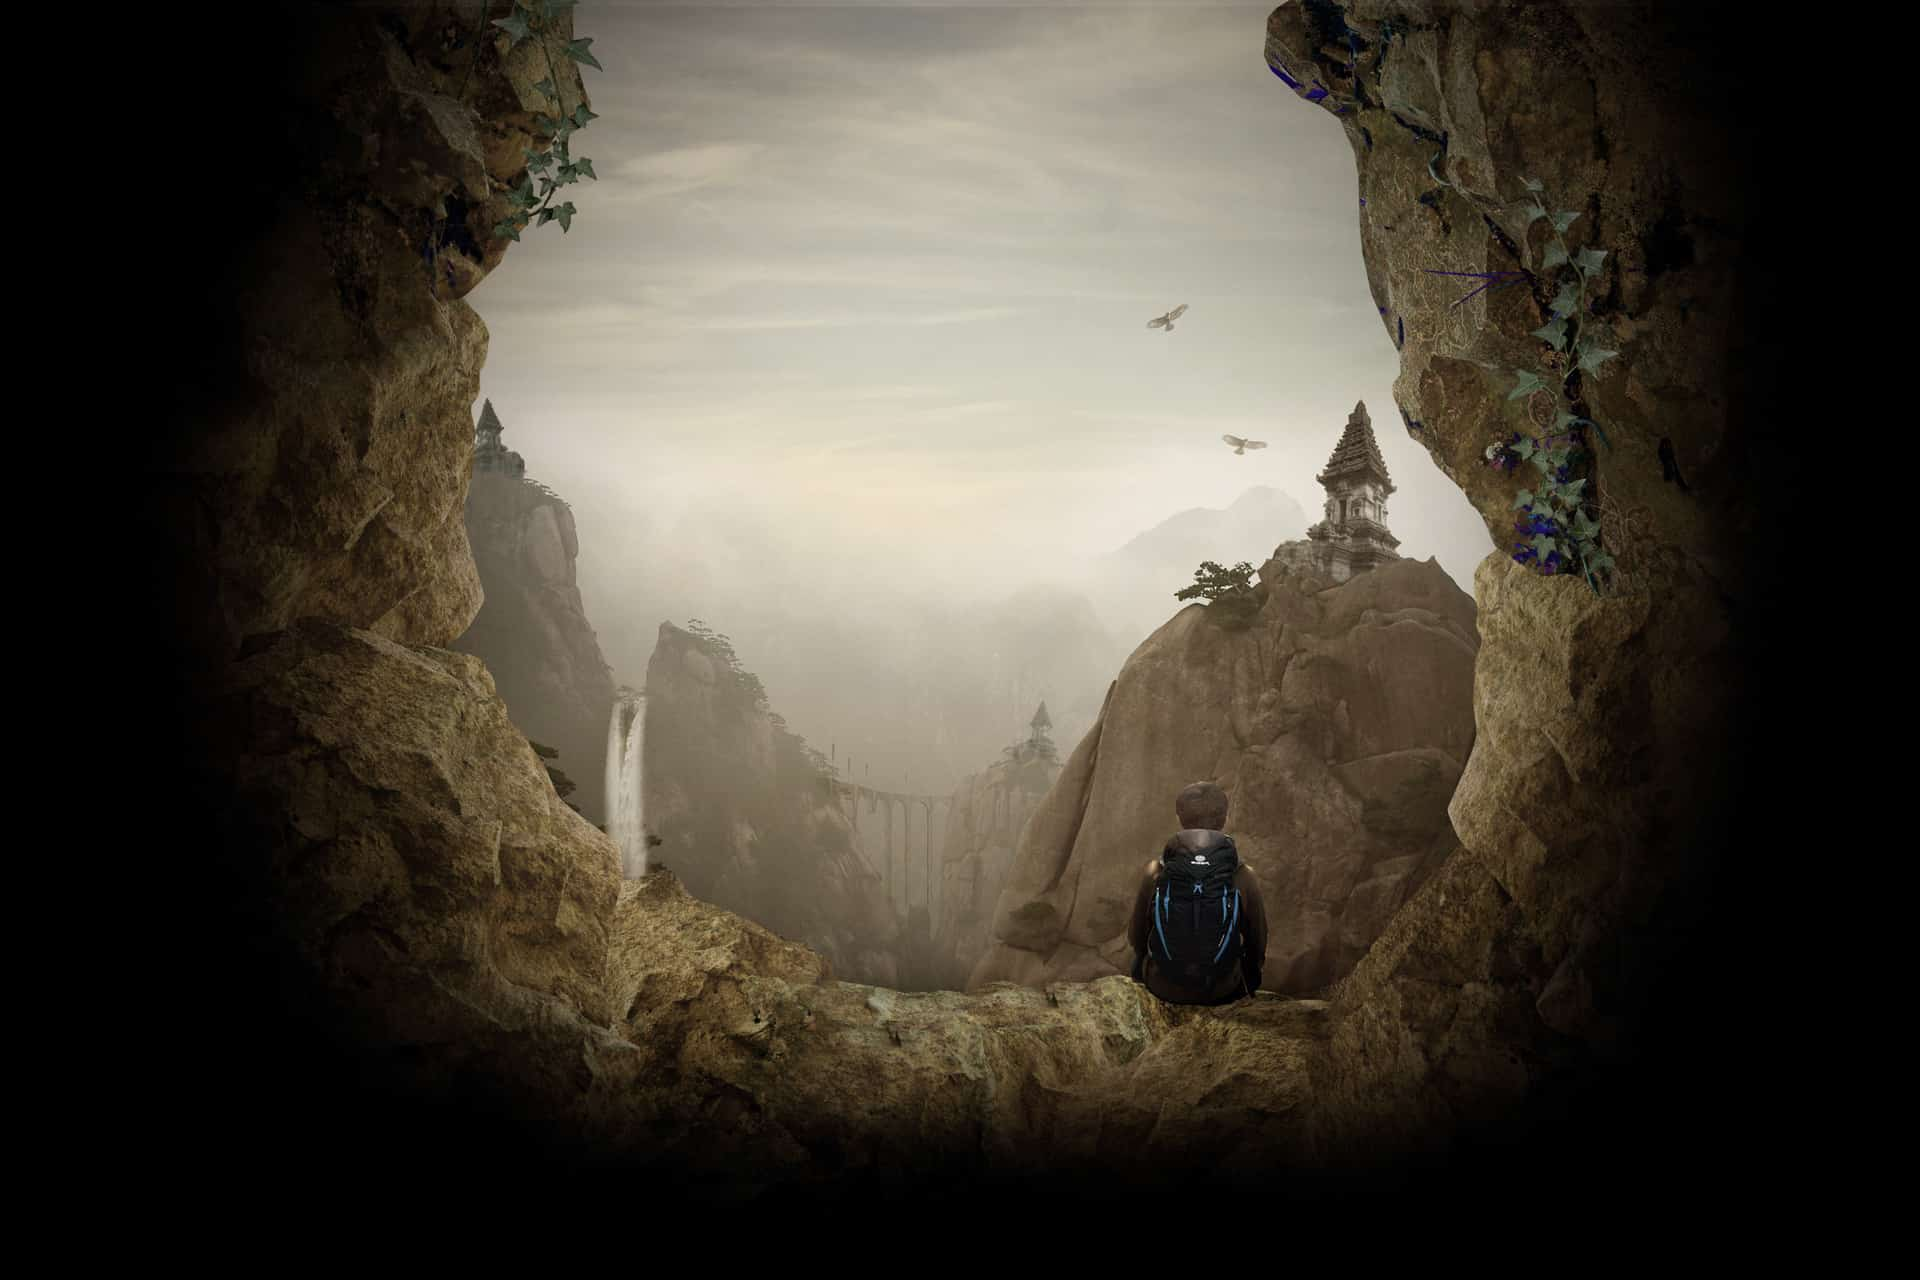 Create an Otherworldly Scene of a Climber in a Cave in Photoshop